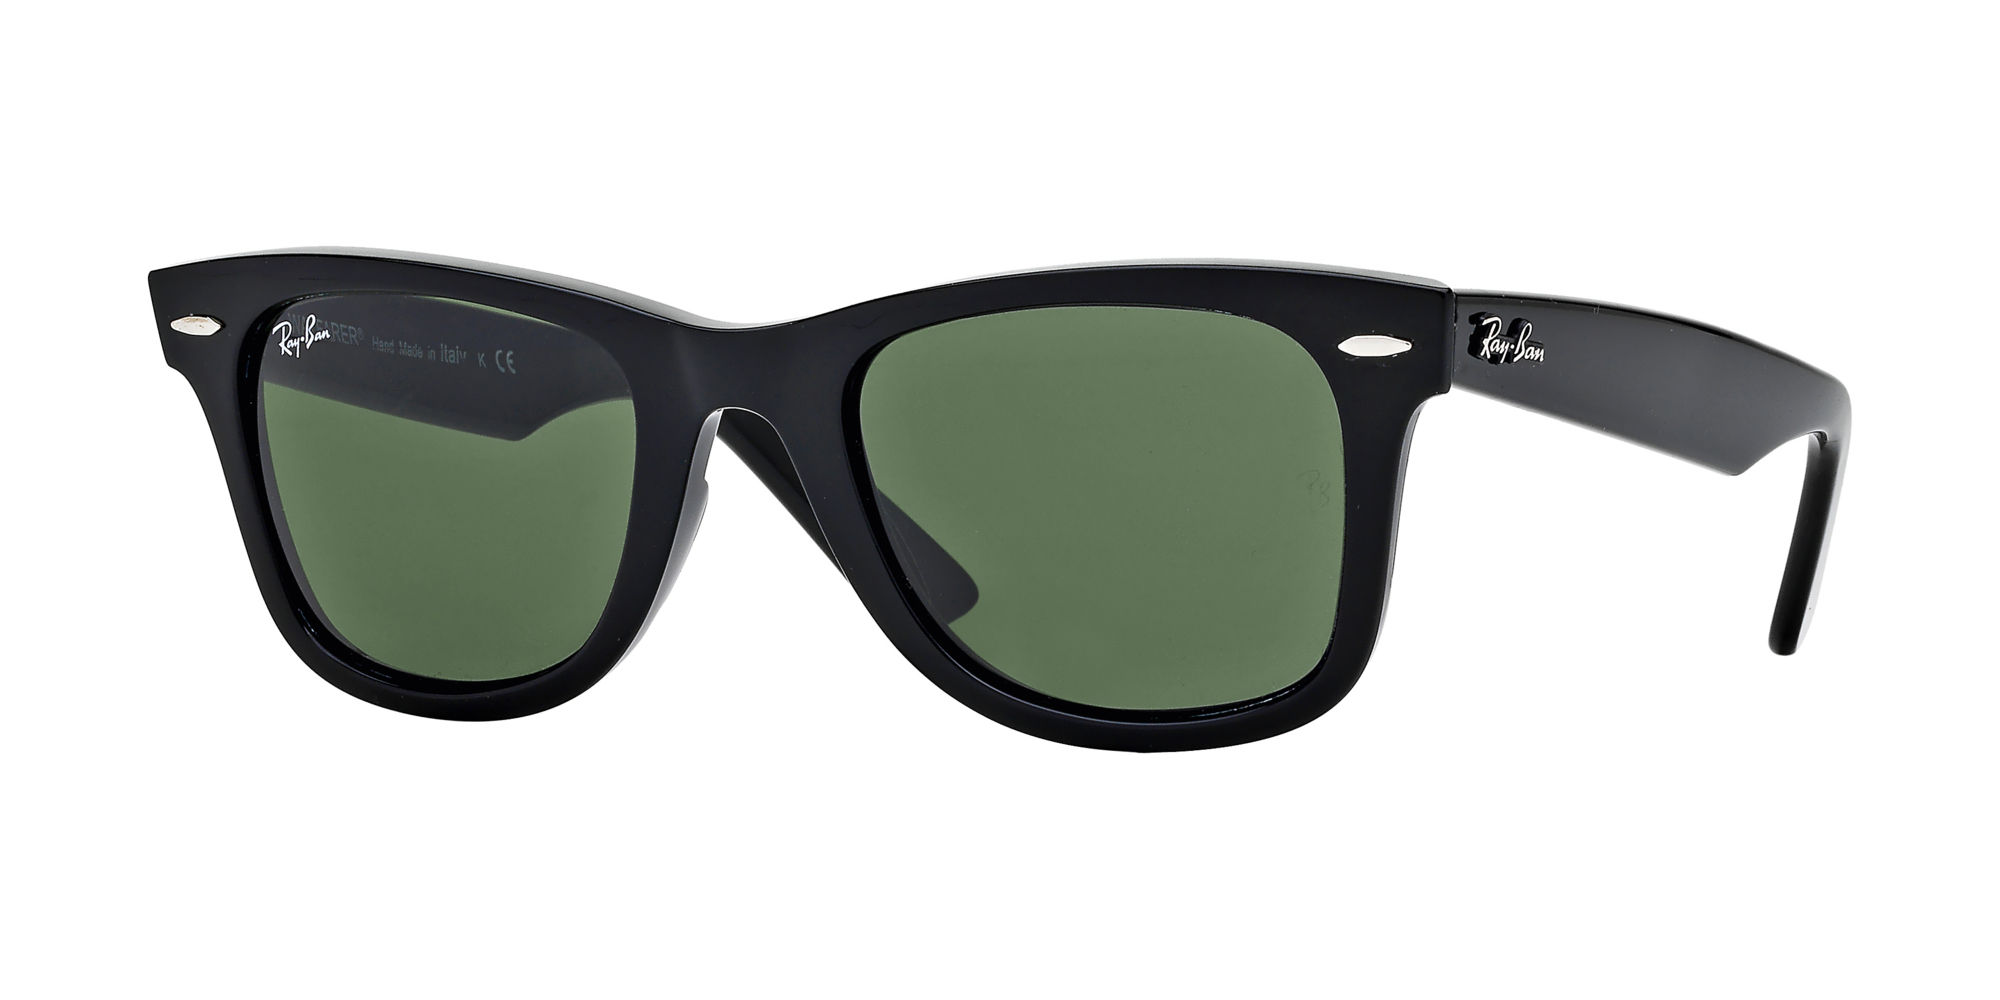 Ray-Ban Green Polarized Wayfarer Sunglasses - RB2140 901/58 54-18